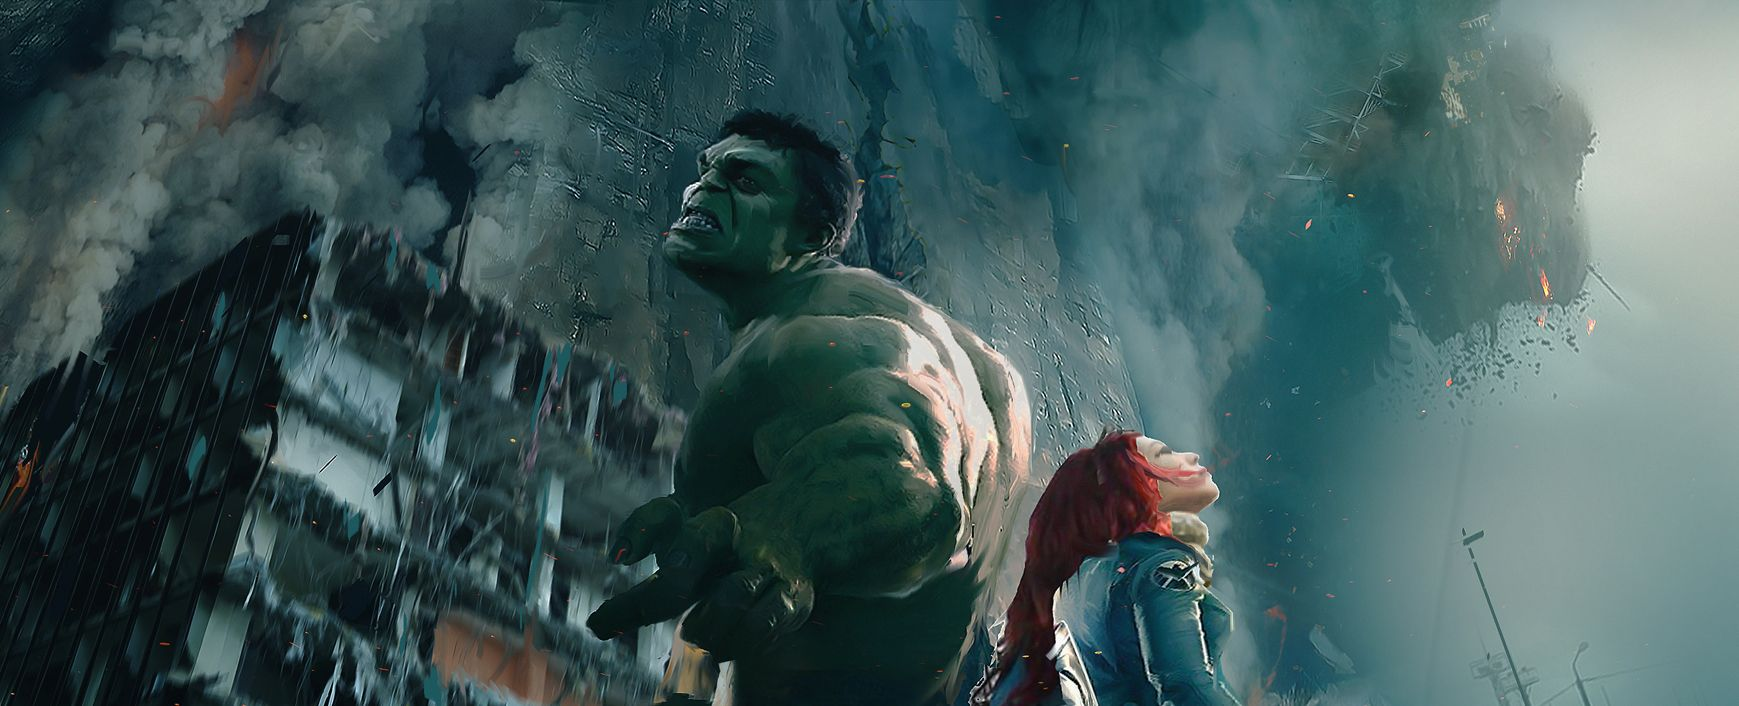 avengers 3 release date revealed collider